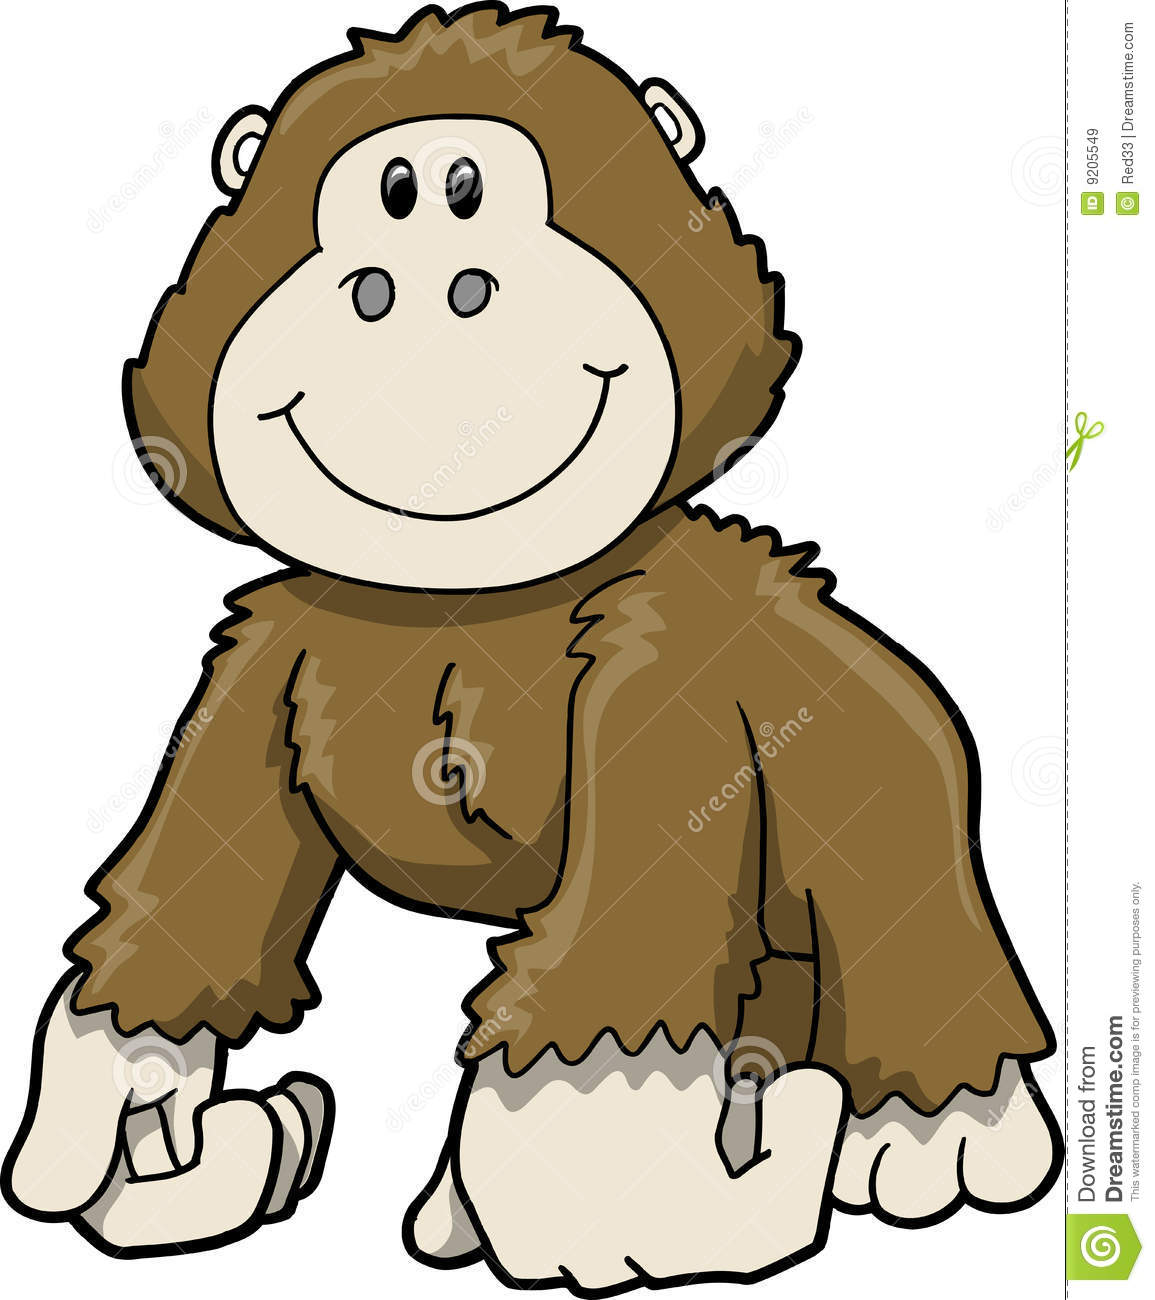 Gorilla Clipart Black And White   Clipart Panda   Free Clipart Images